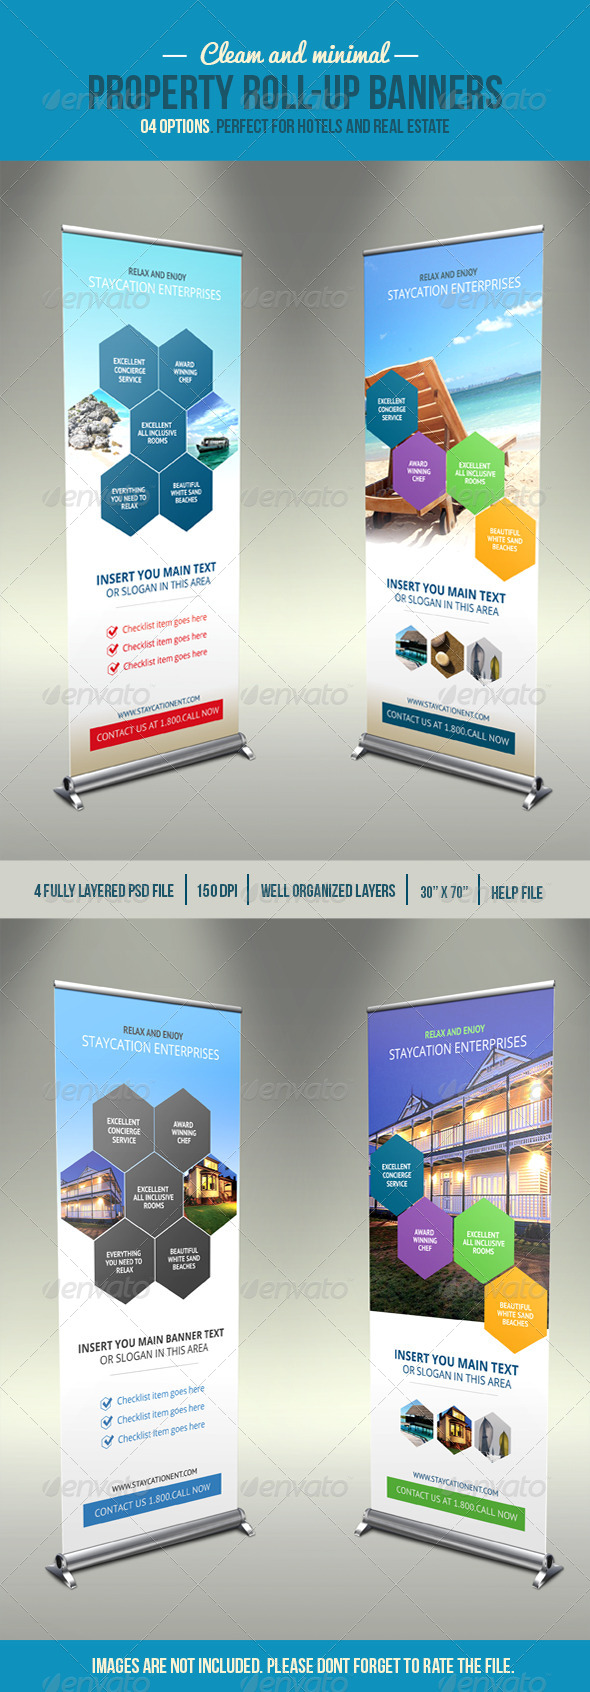 GraphicRiver Hexa Property Roll-Up Banner 4463089